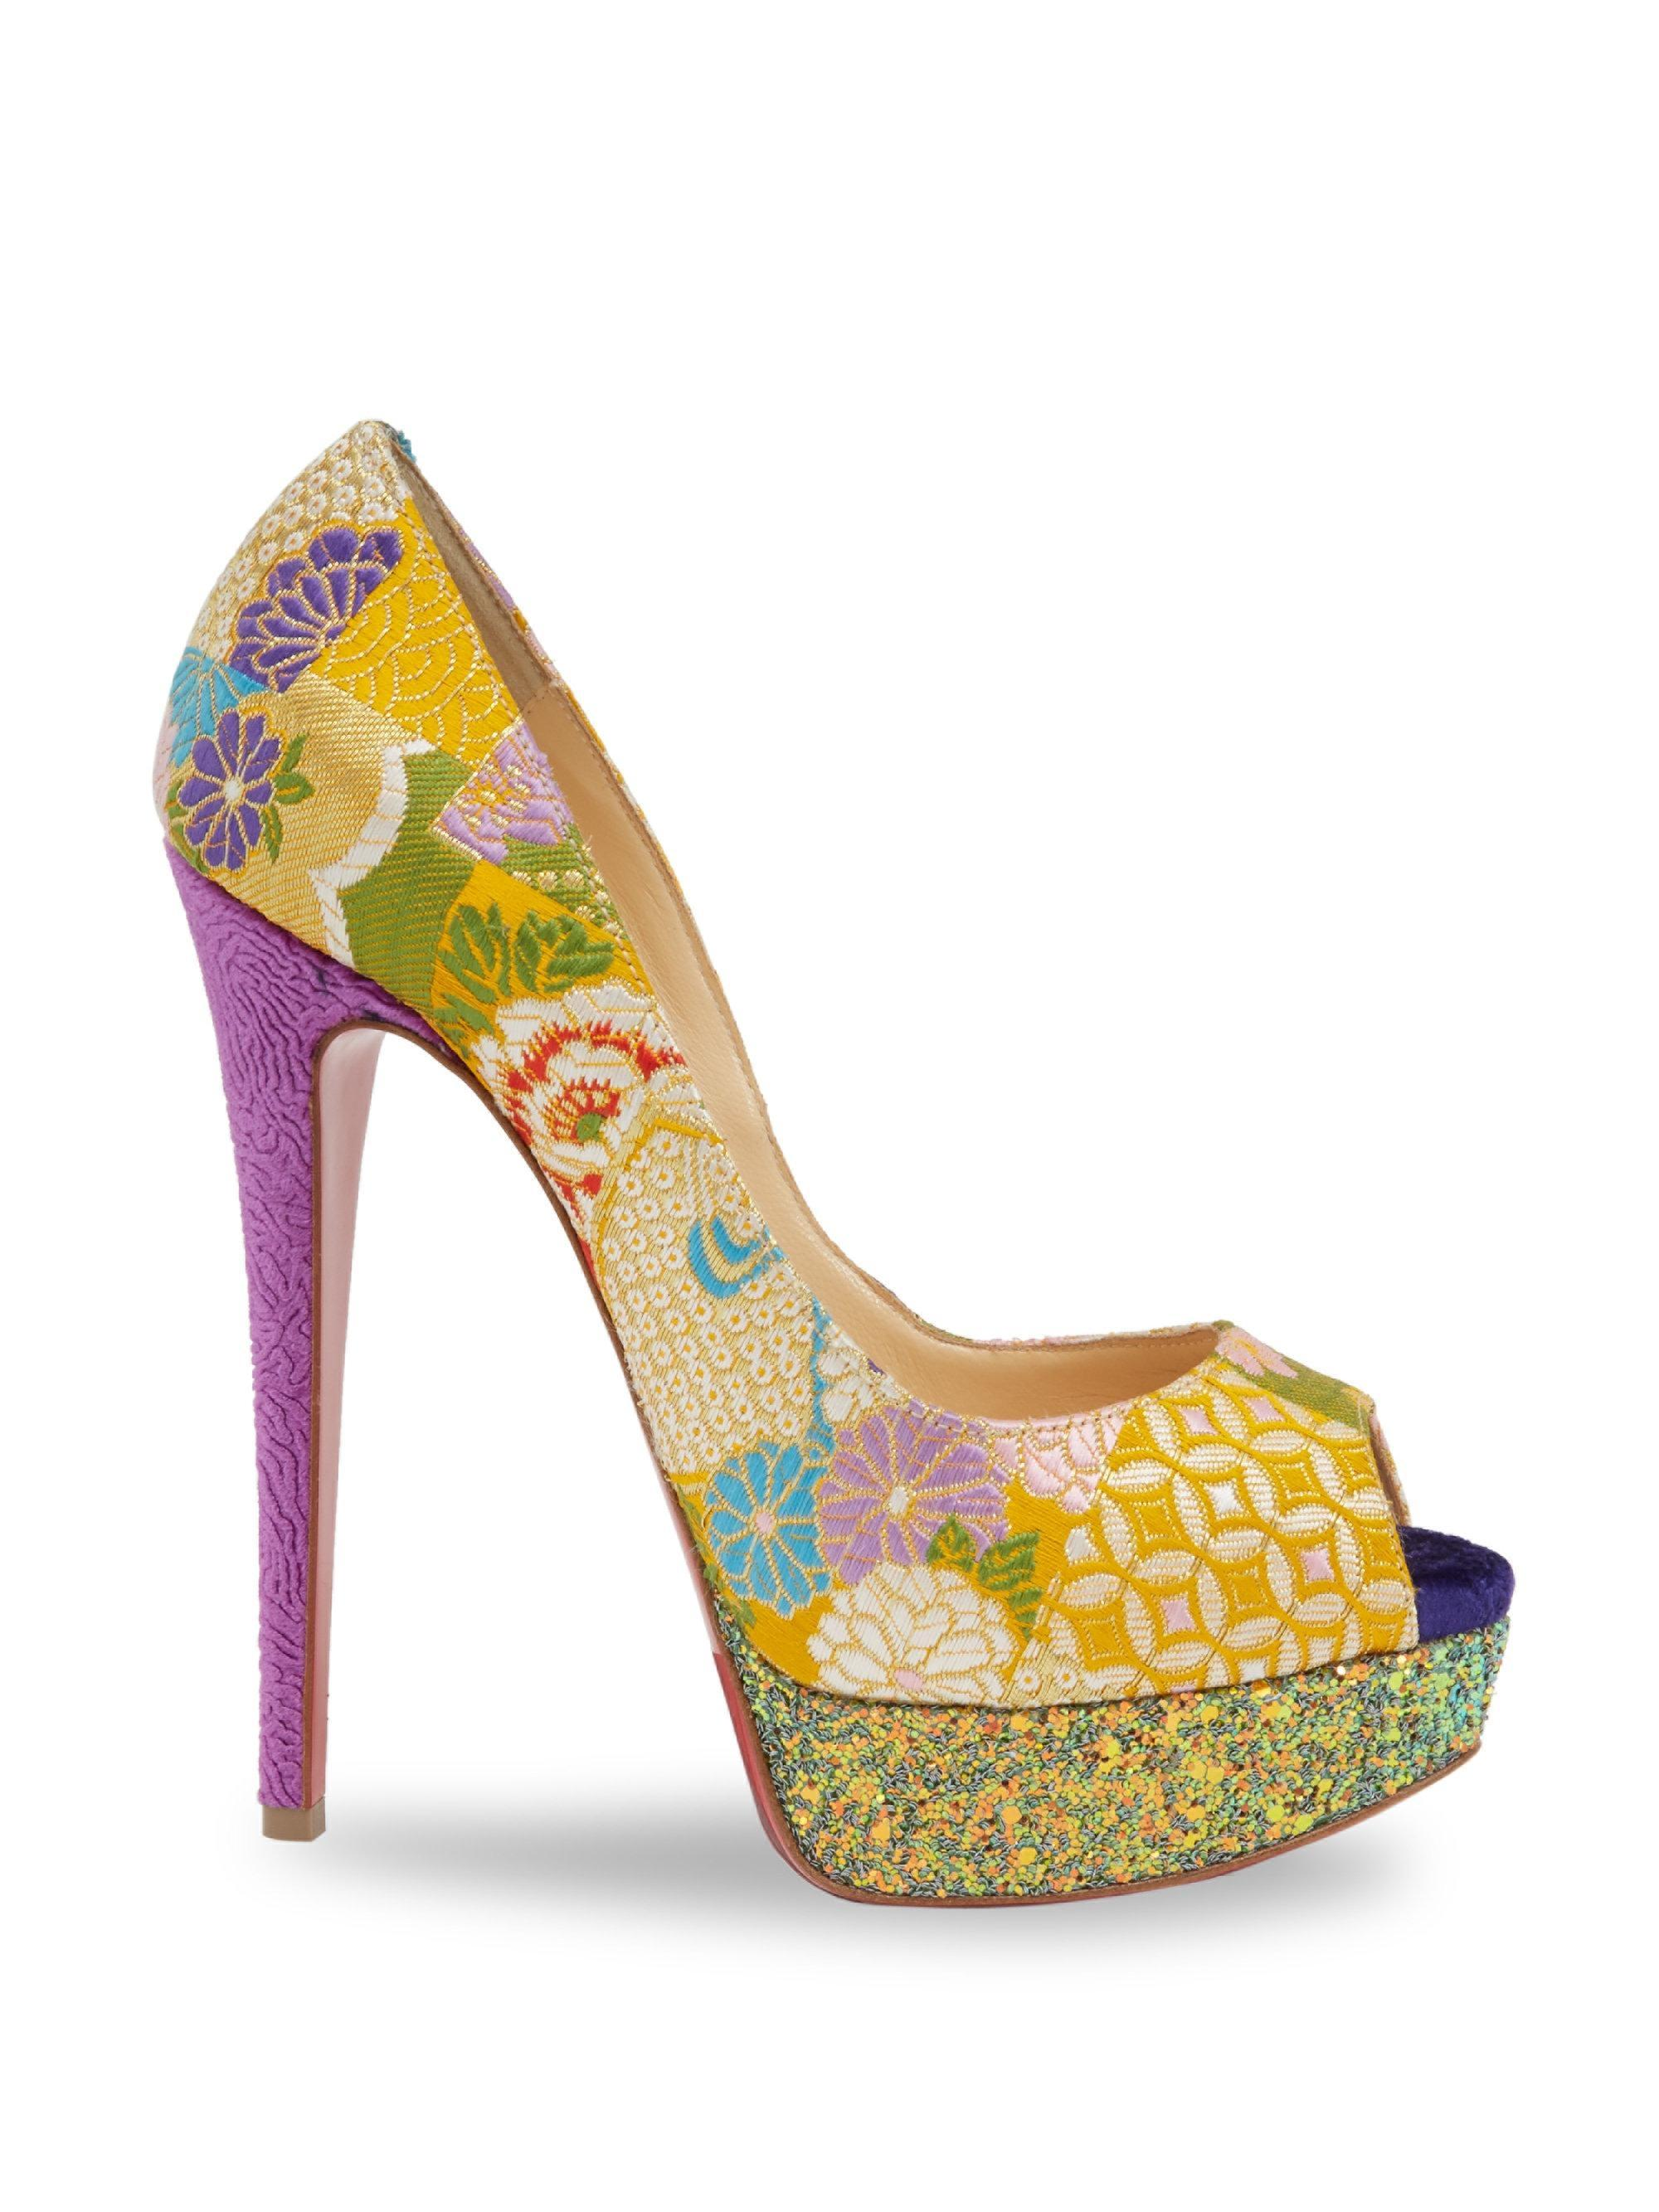 f692d09f41376 ... official christian louboutin lady peep toe stiletto platform glitter  multicolor pumps 0ea2c 70630